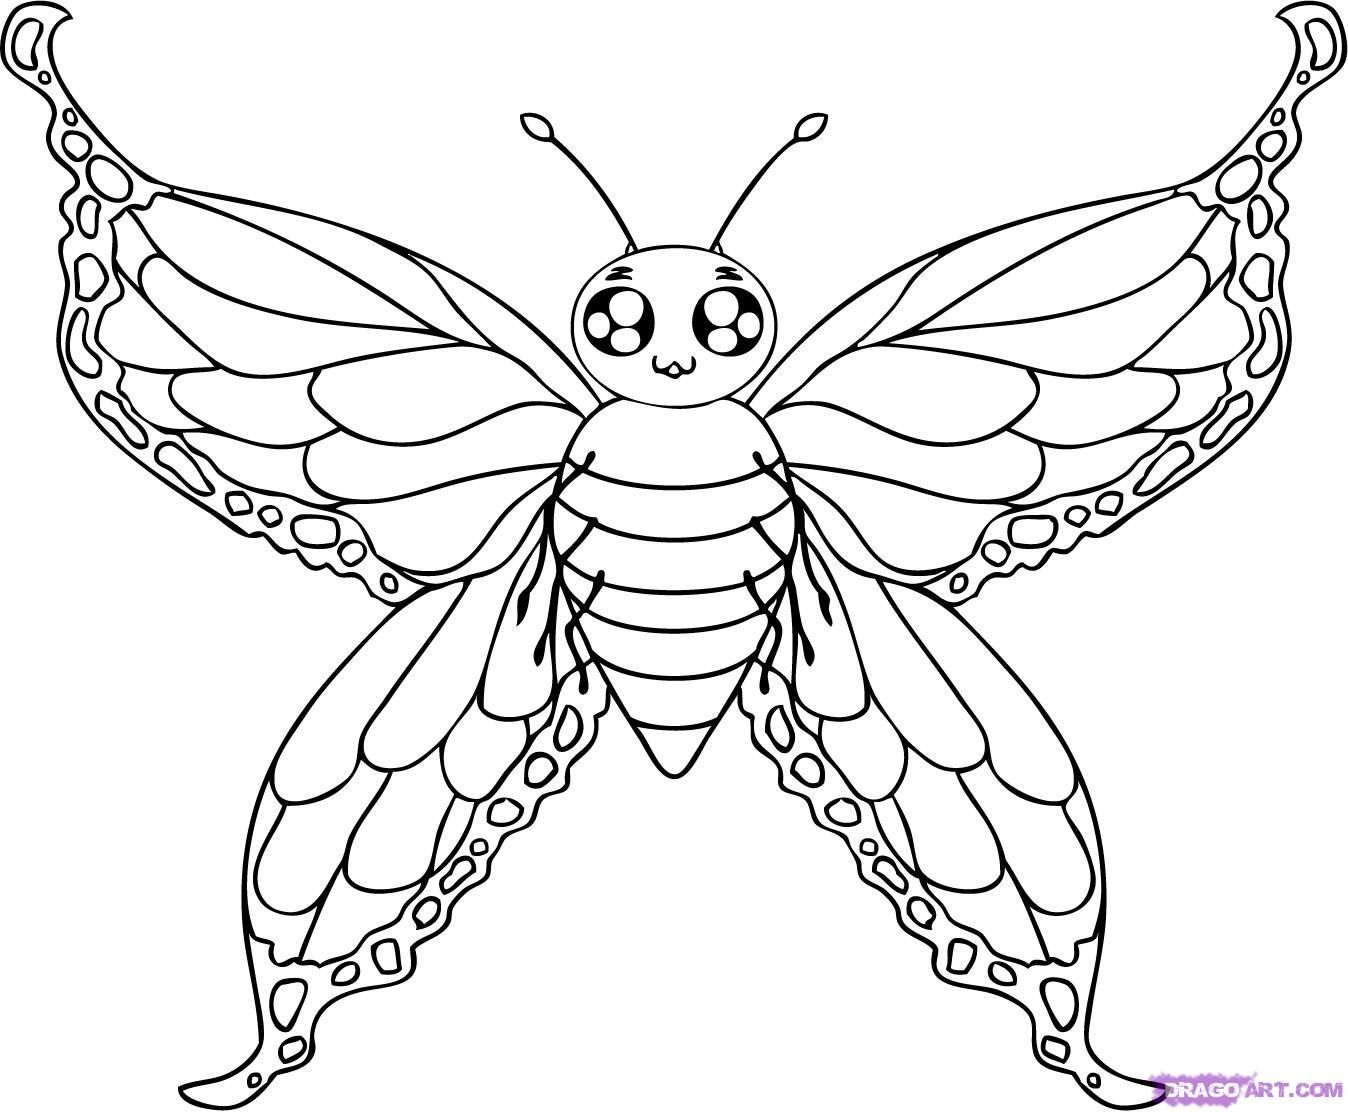 Line Drawing For Kids : Line art drawings bing images coloring pages for